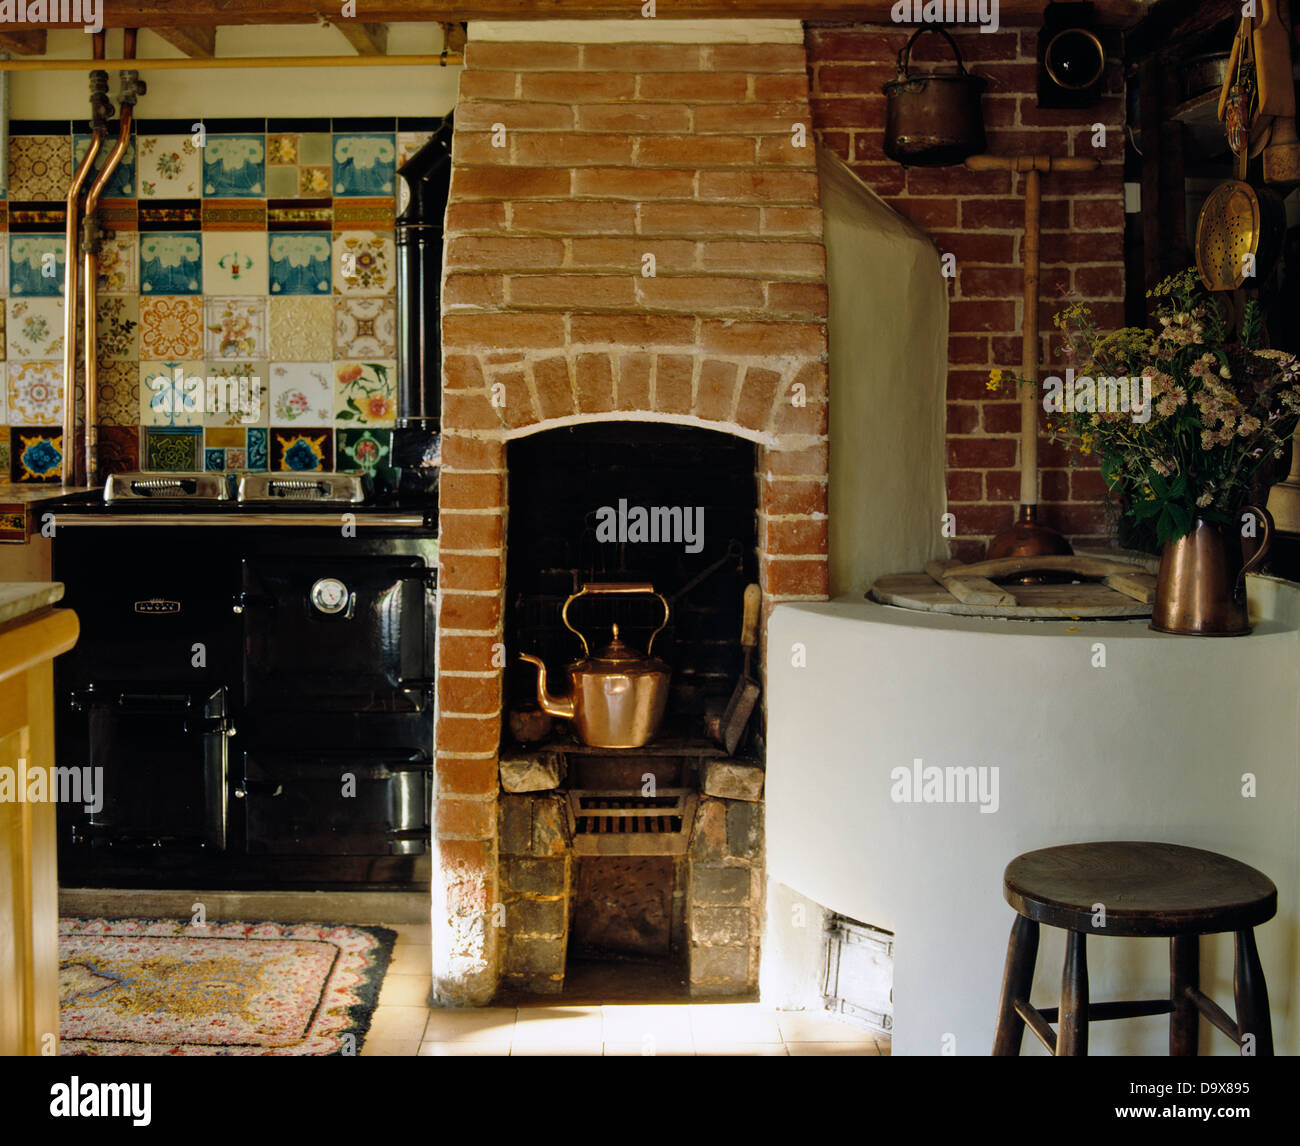 copper kettle on original brick stove in country kitchen with